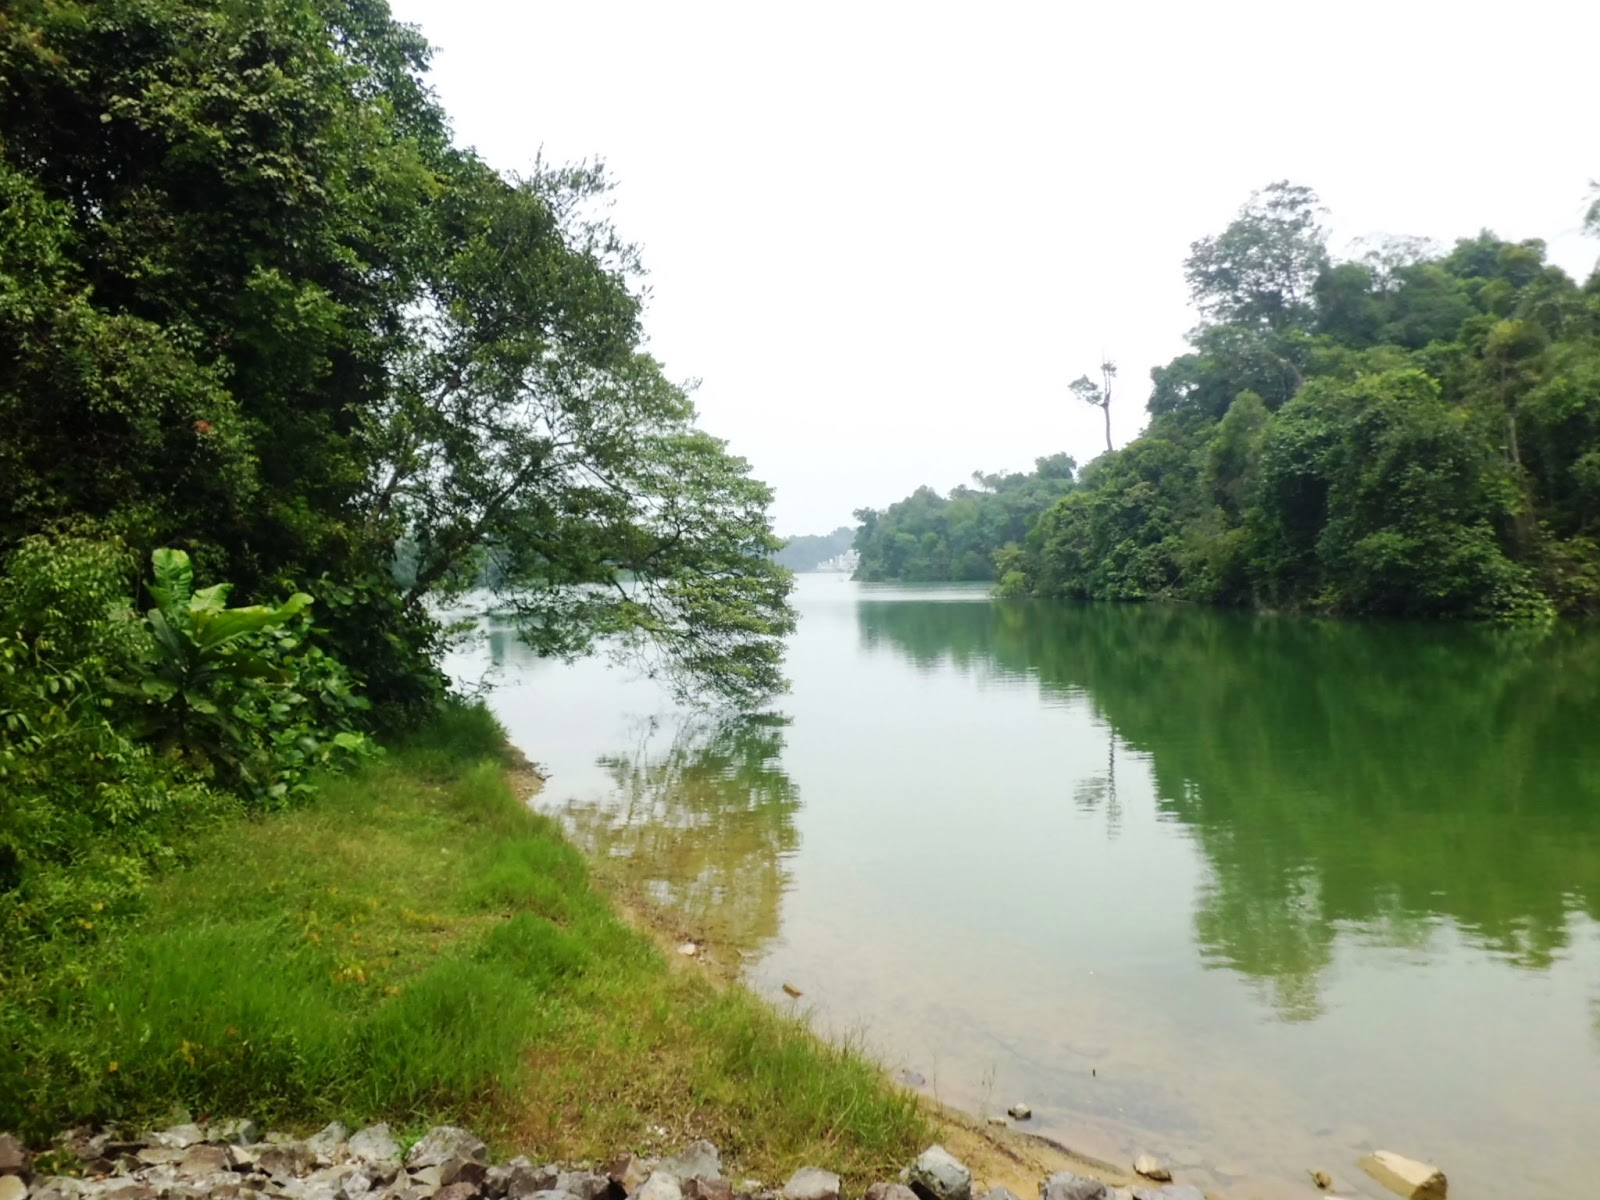 It is possible that Linggiu may fail, compromising the viability of the Johor River source and the reliability of imported water.